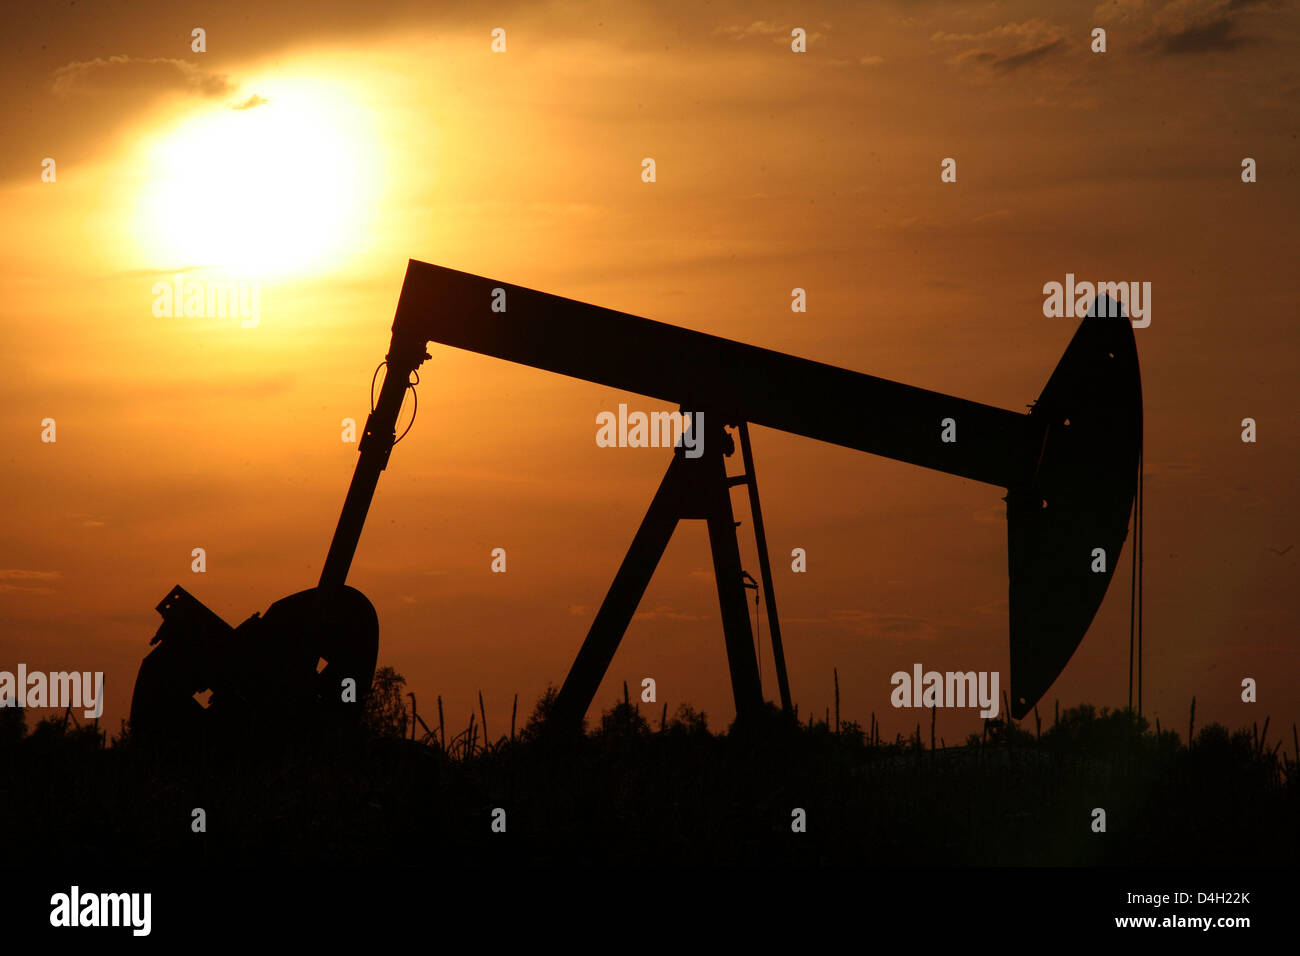 The sun sets behind a pumpjack-type oil pump near Emlichheim, County Bentheim, Germany, 28 July 2008. Since 60 years Kassel-based energy provider 'Wintershall' has been producing oil in the border region to the Netherlands. 150,000 tons of oil are conveyed per year. Photo: Uwe Zucchi Stock Photo